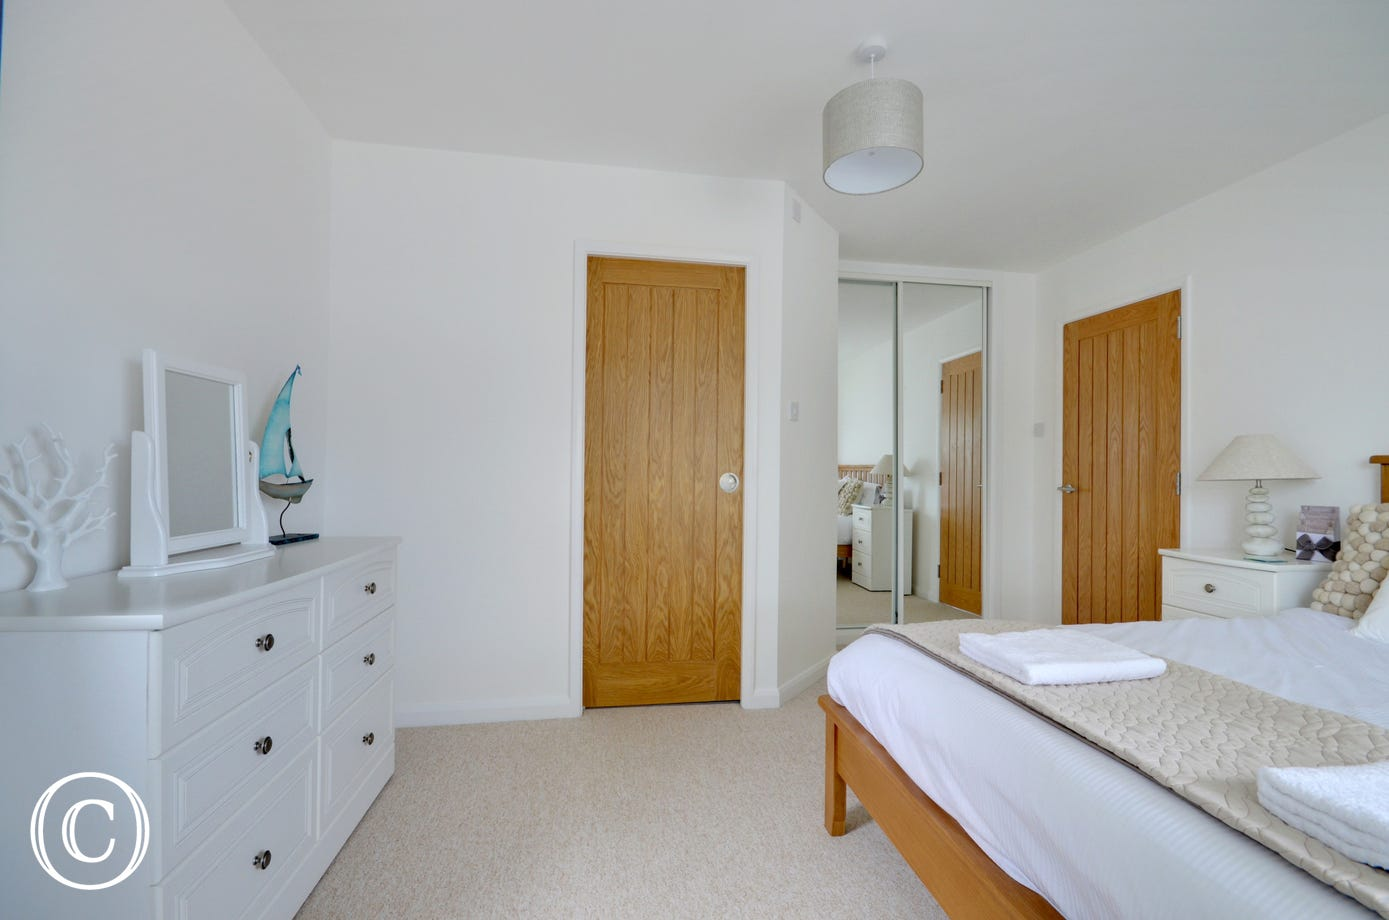 Beautifully decorated bedroom with modern ensuite bathroom